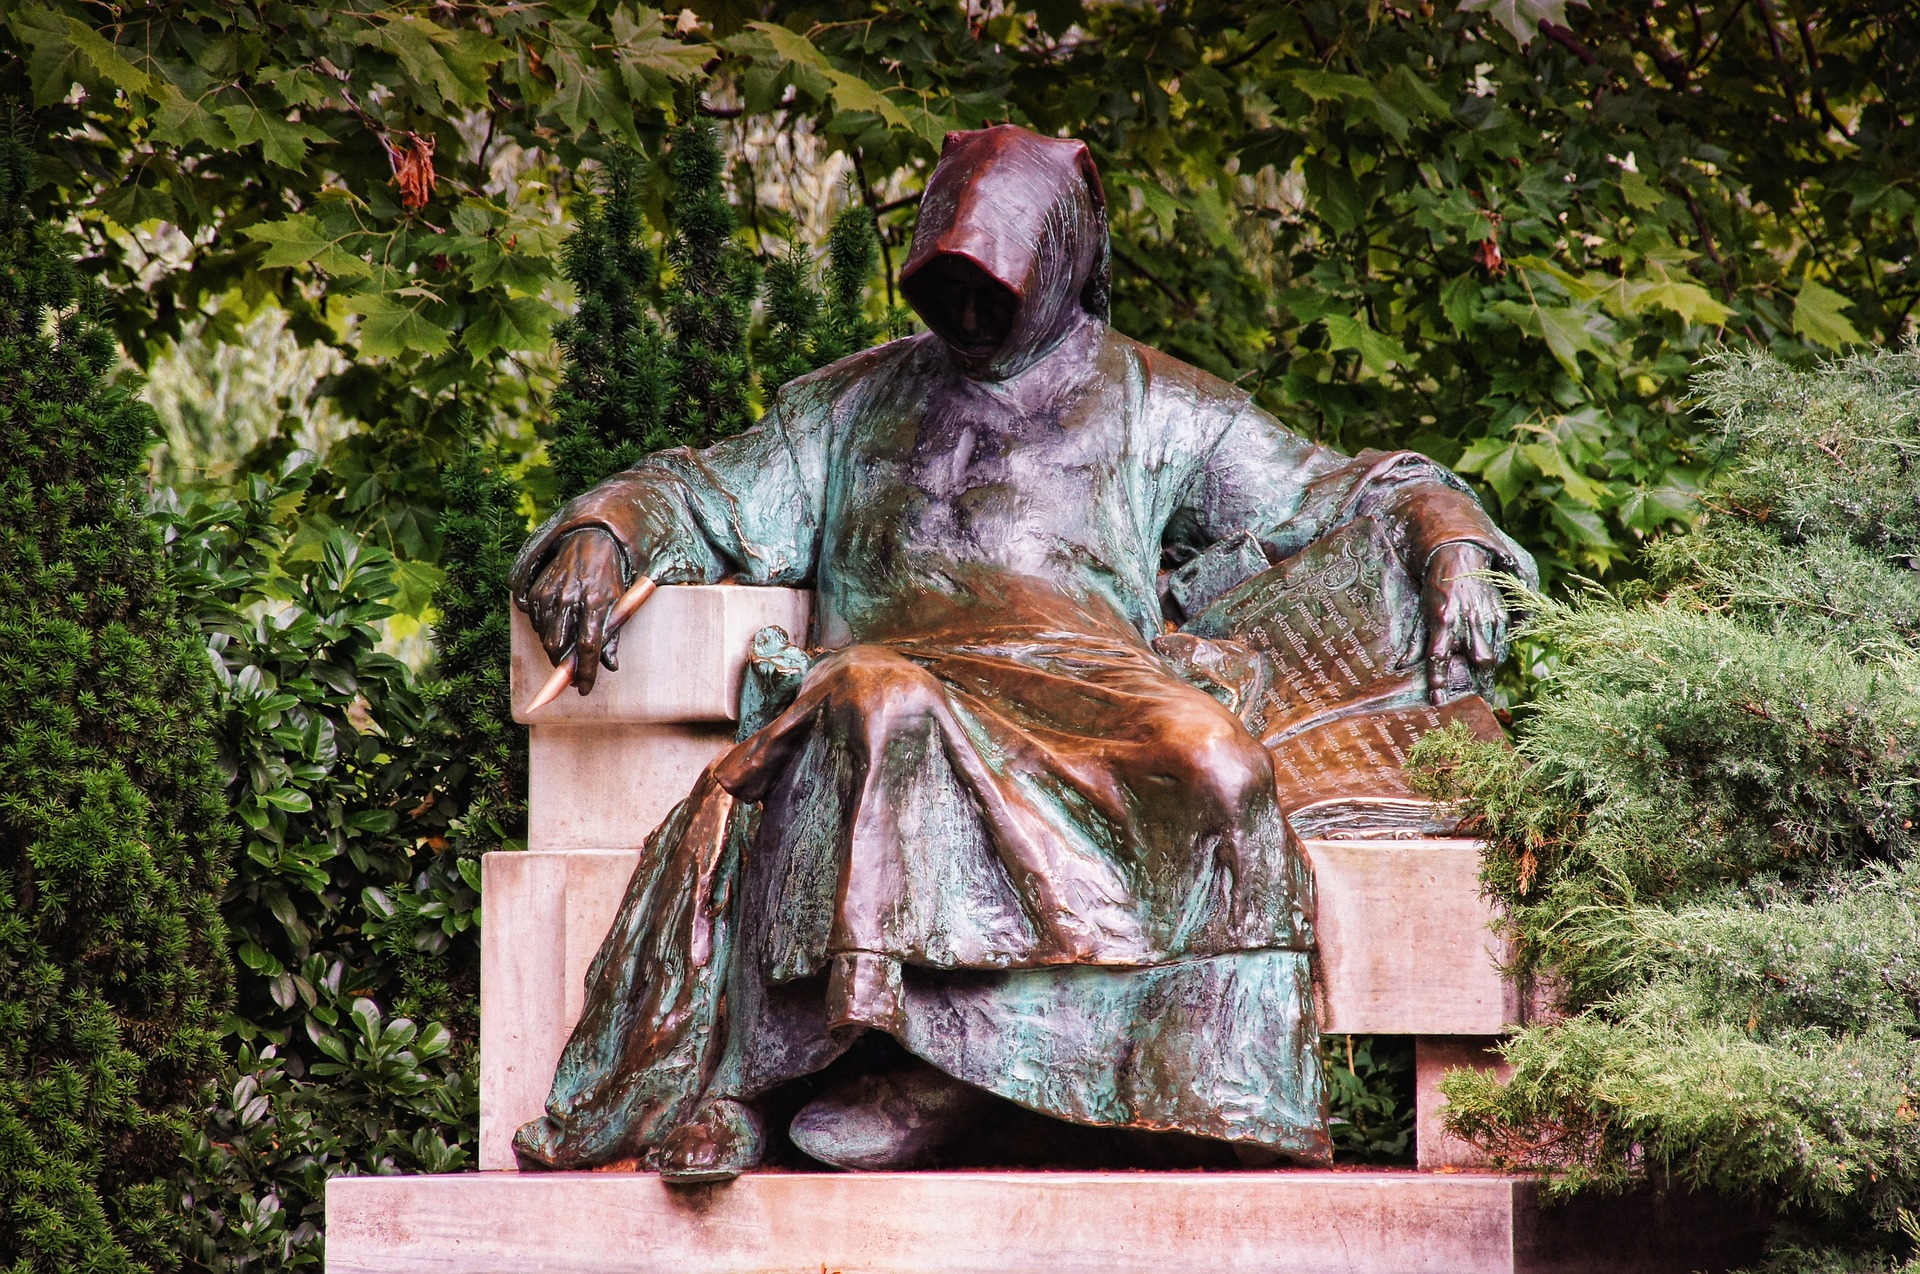 Statue at Vajdahunyad Castle, in the City Park of Budapest, Hungary